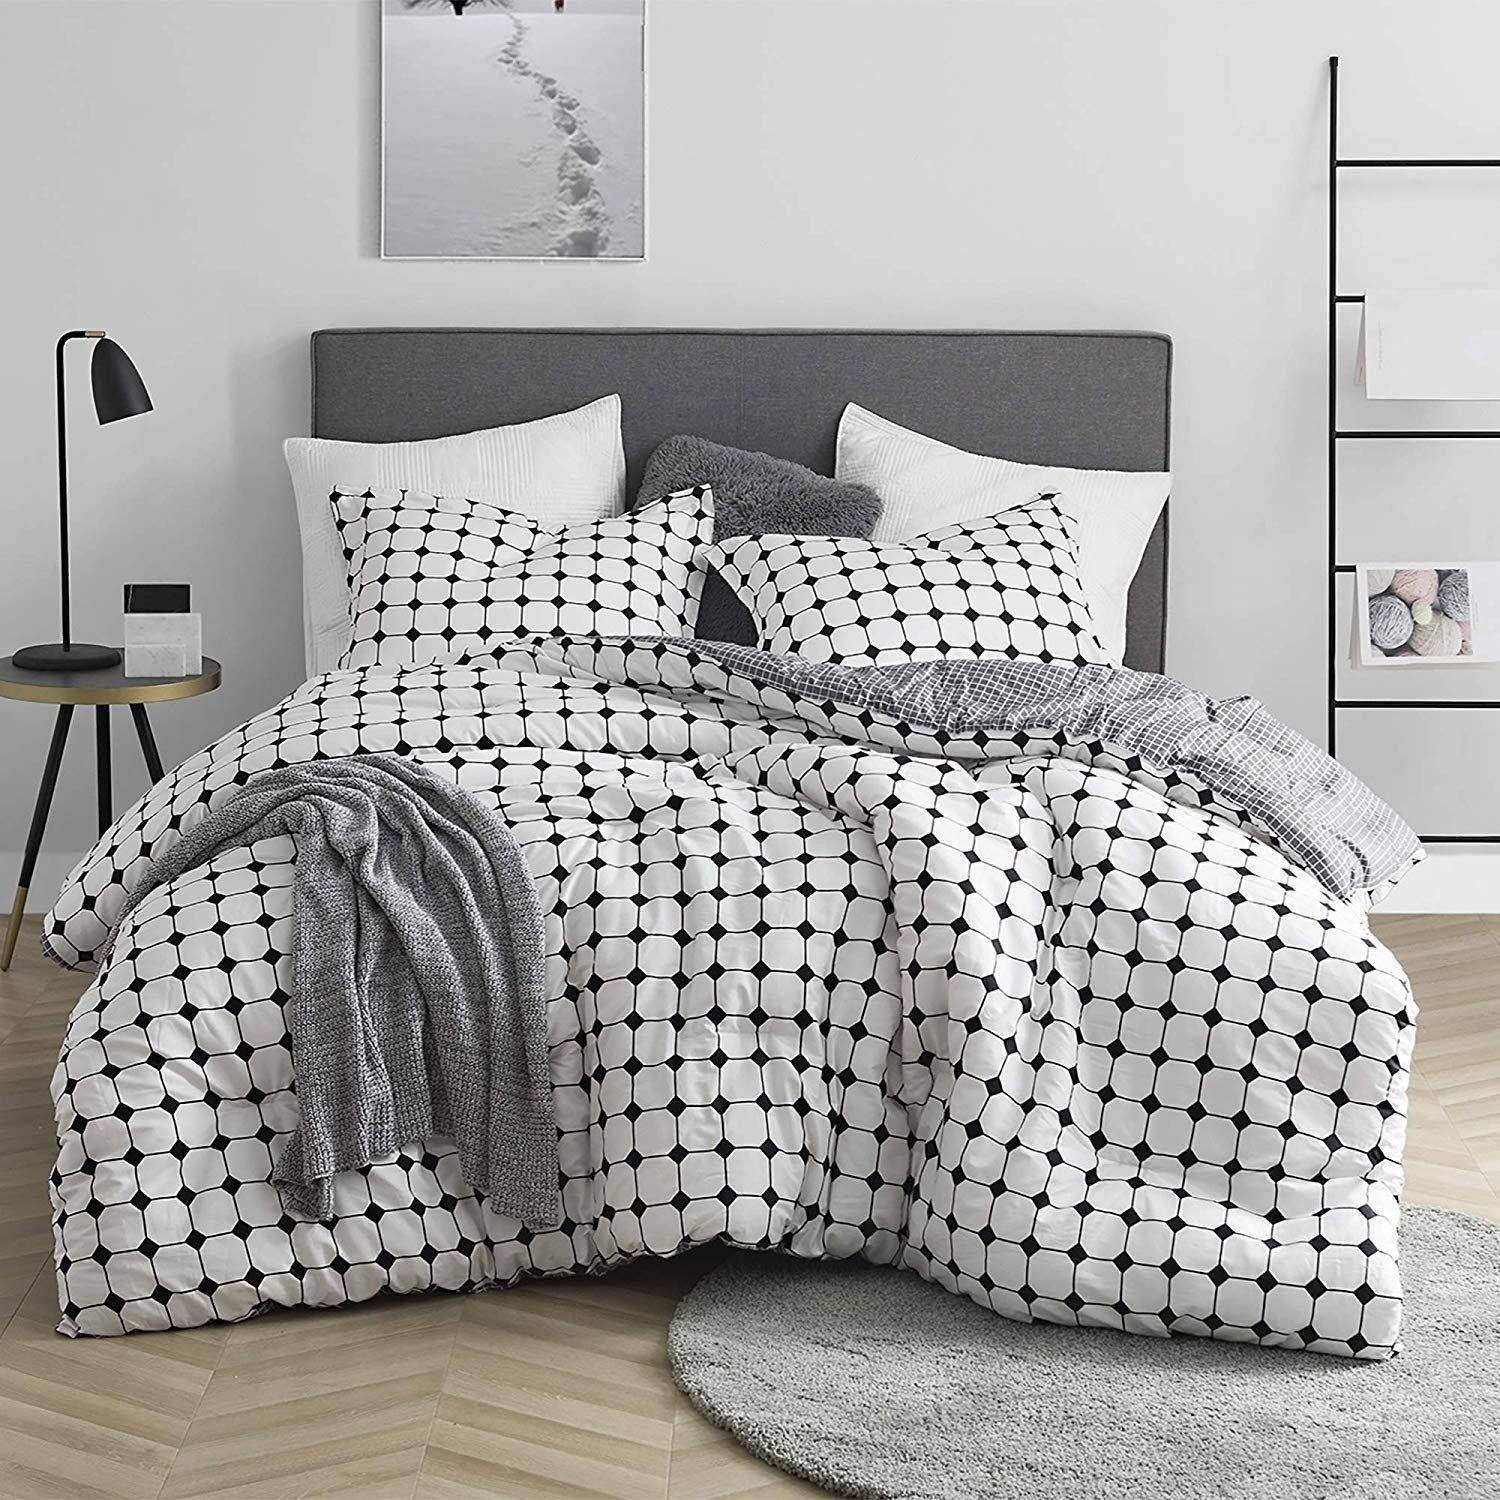 Black and White Comforter Set Unique Moda Black and White Striped Oversized forter 100